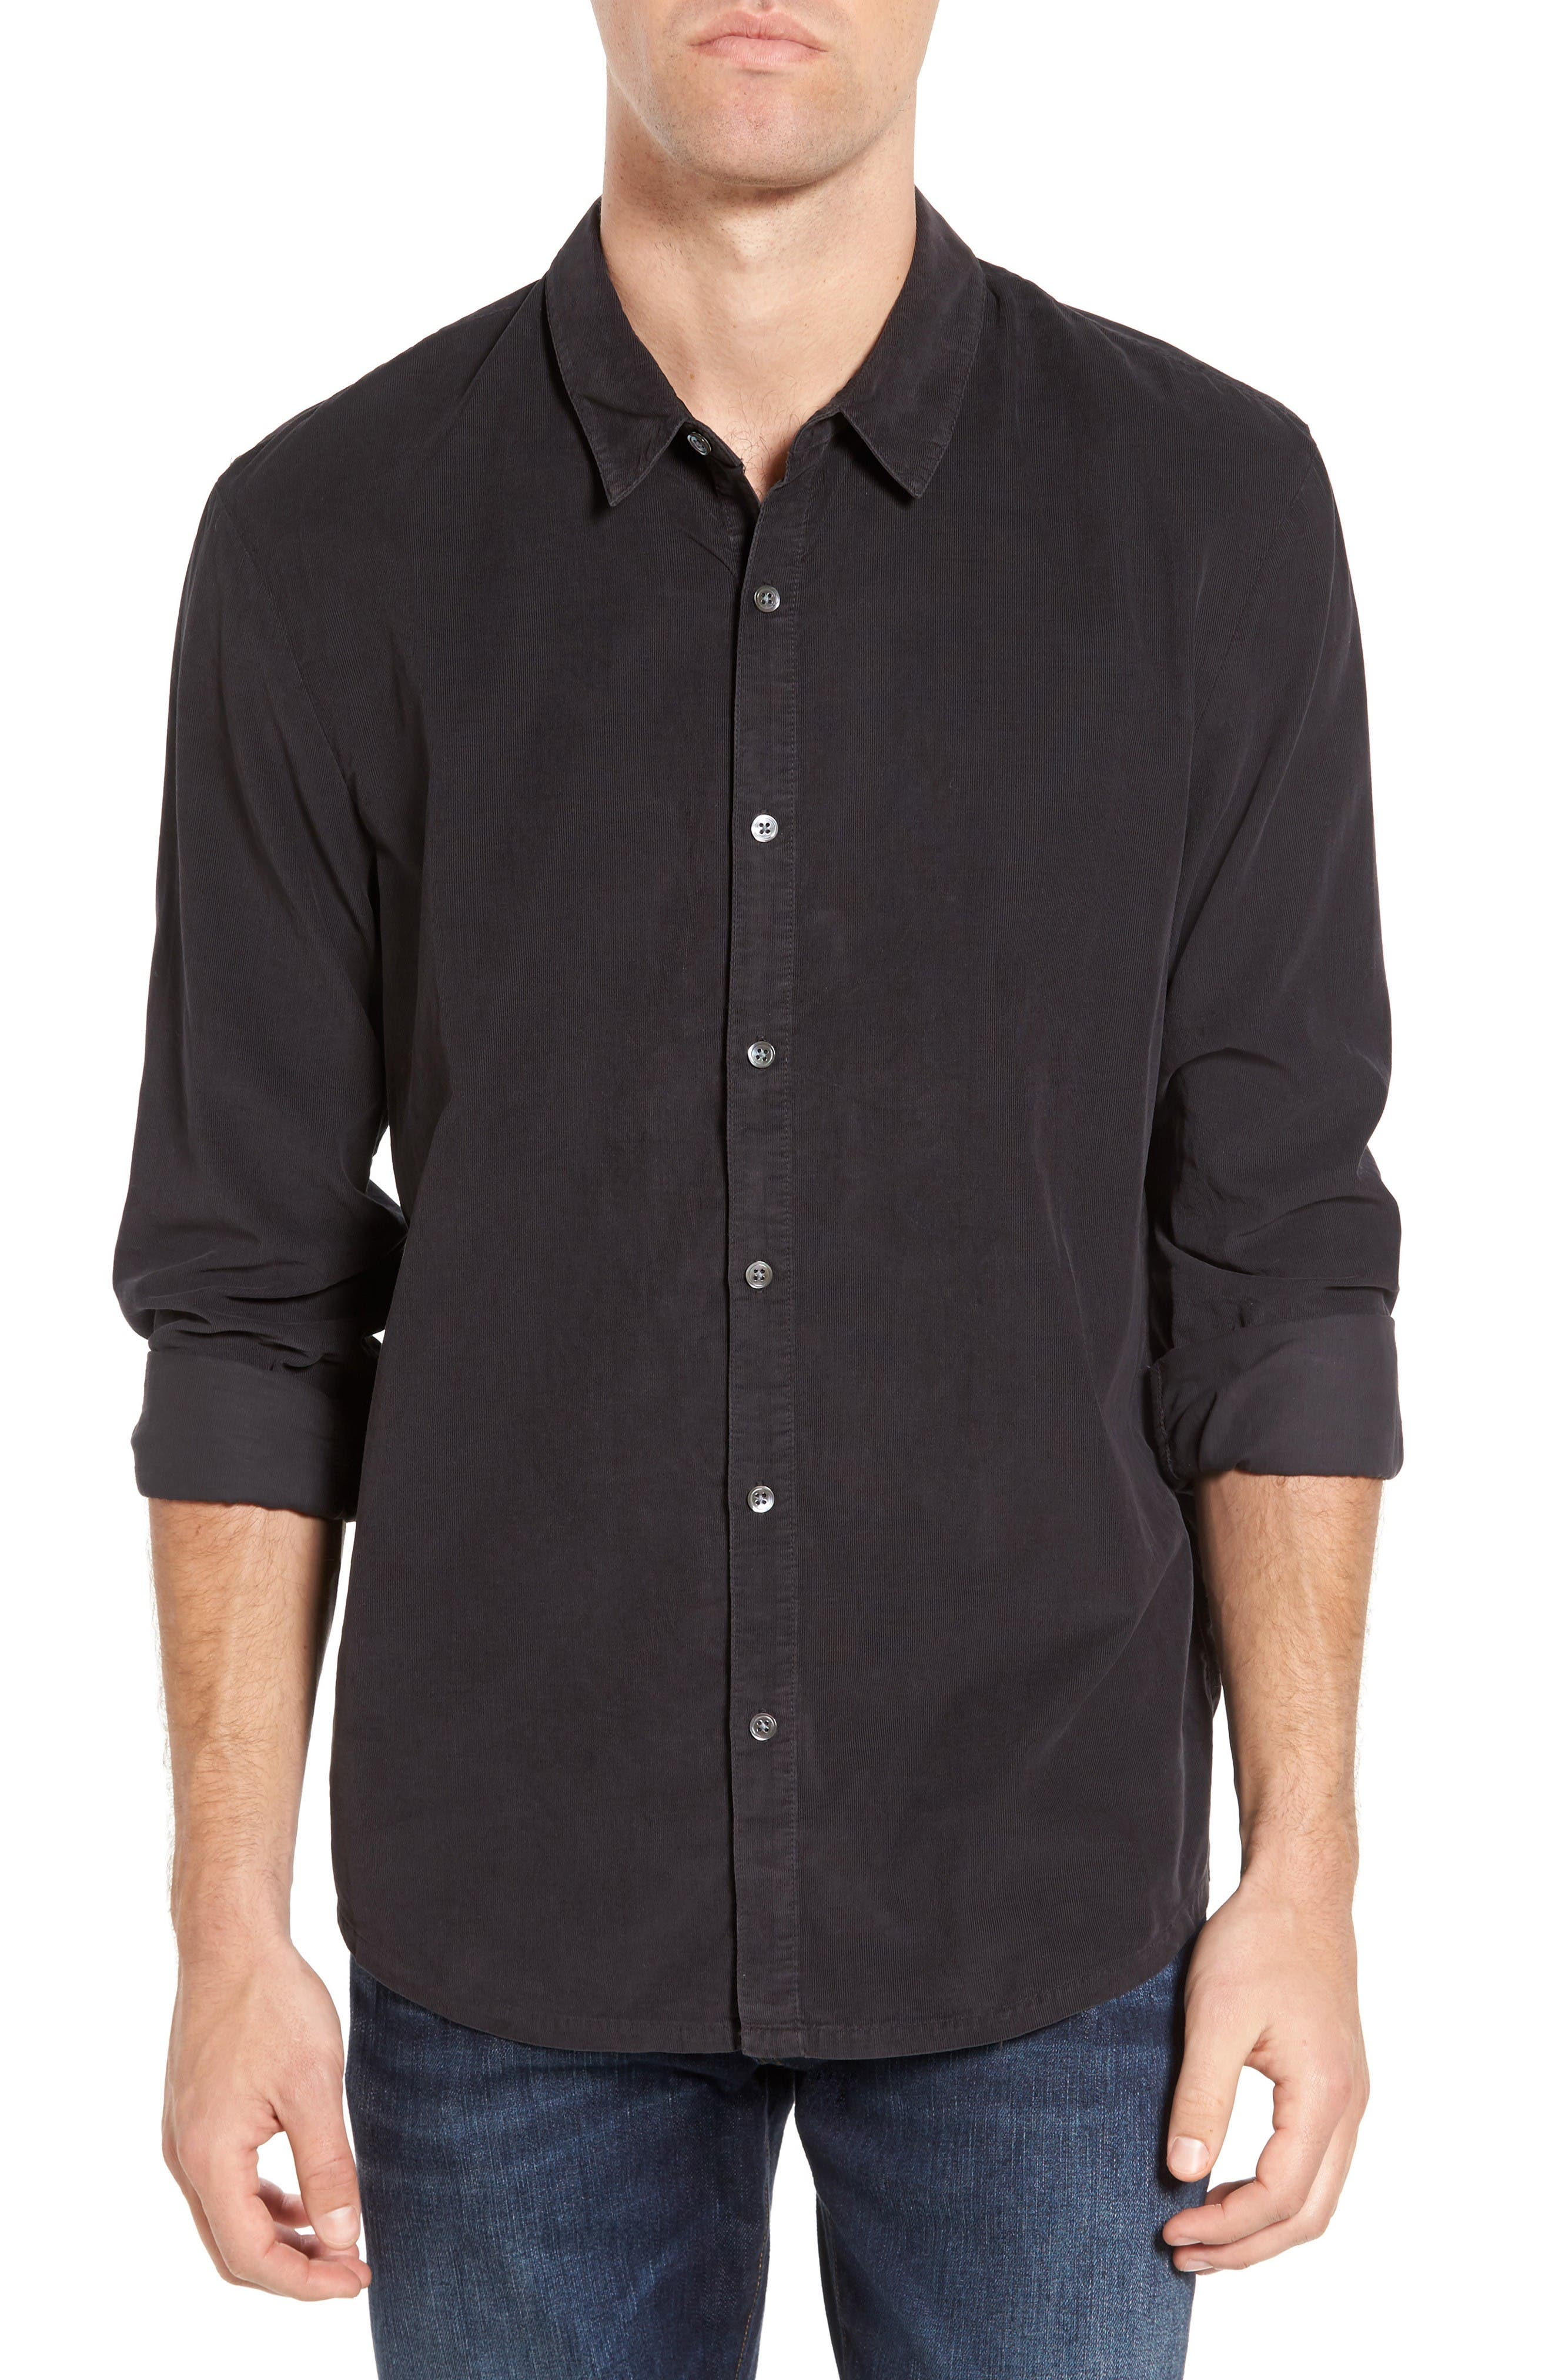 James Perse Corduroy Sport Shirt